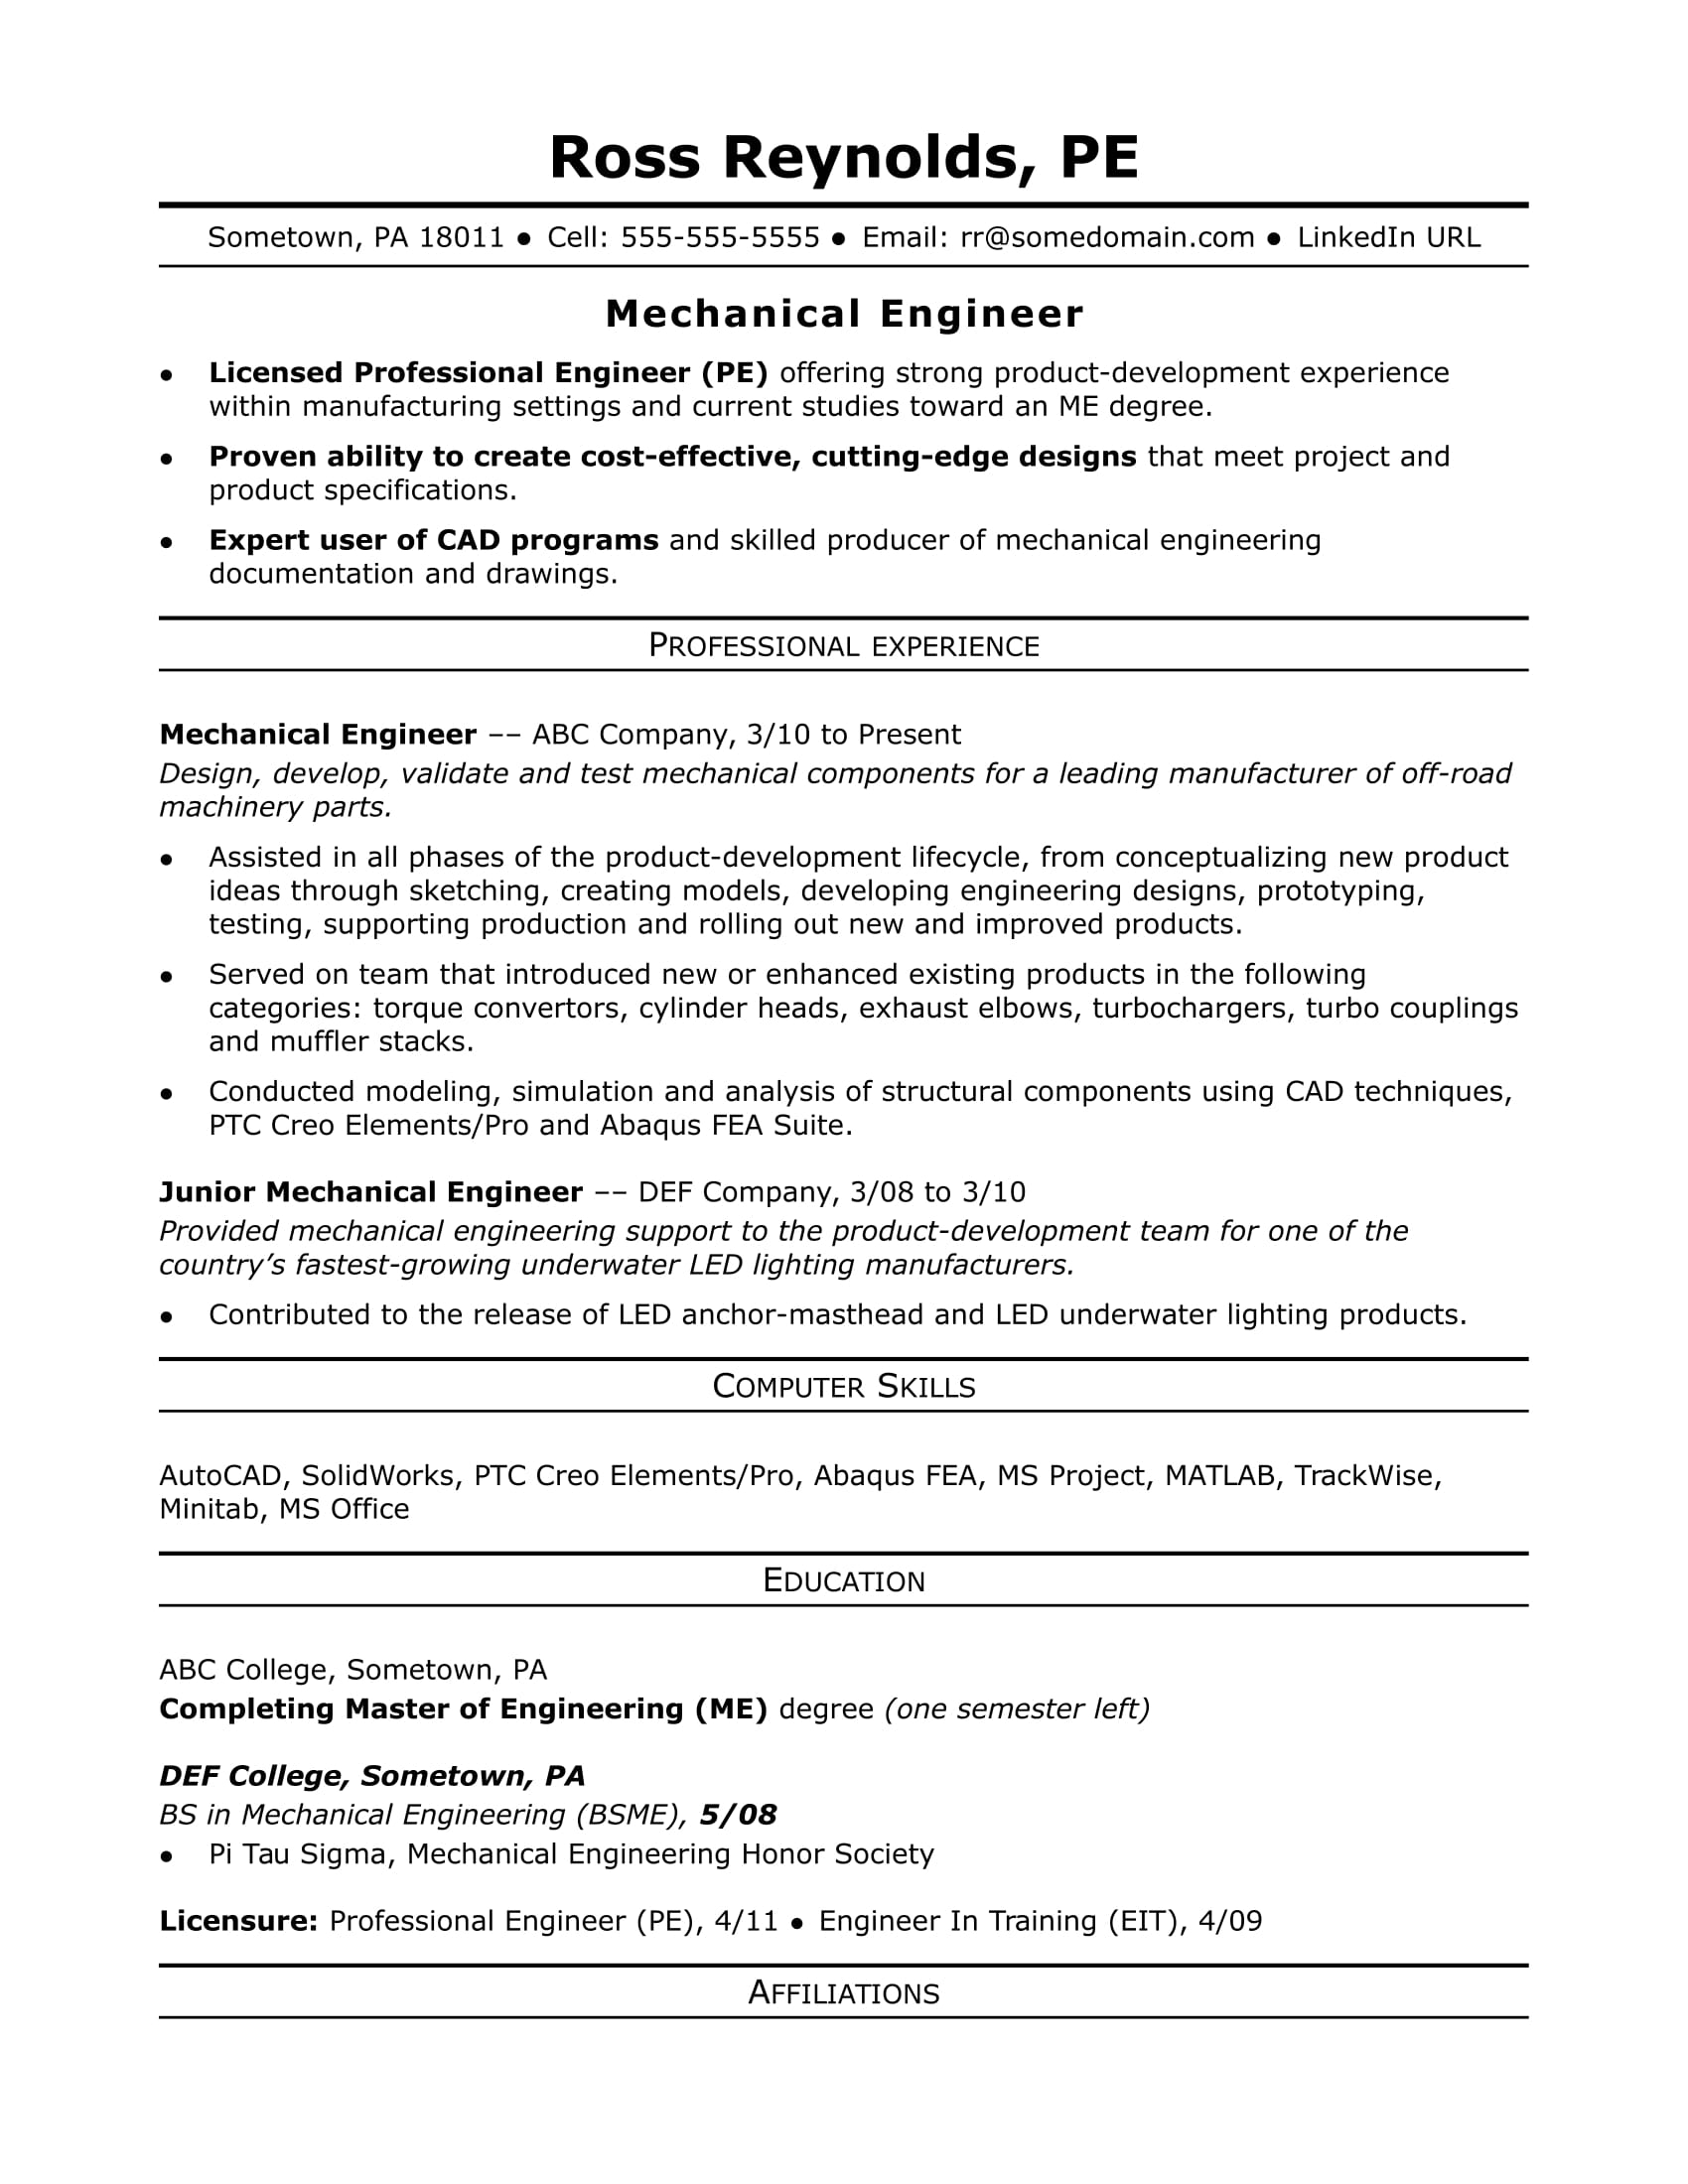 Sample Resume For A Midlevel Mechanical Engineer